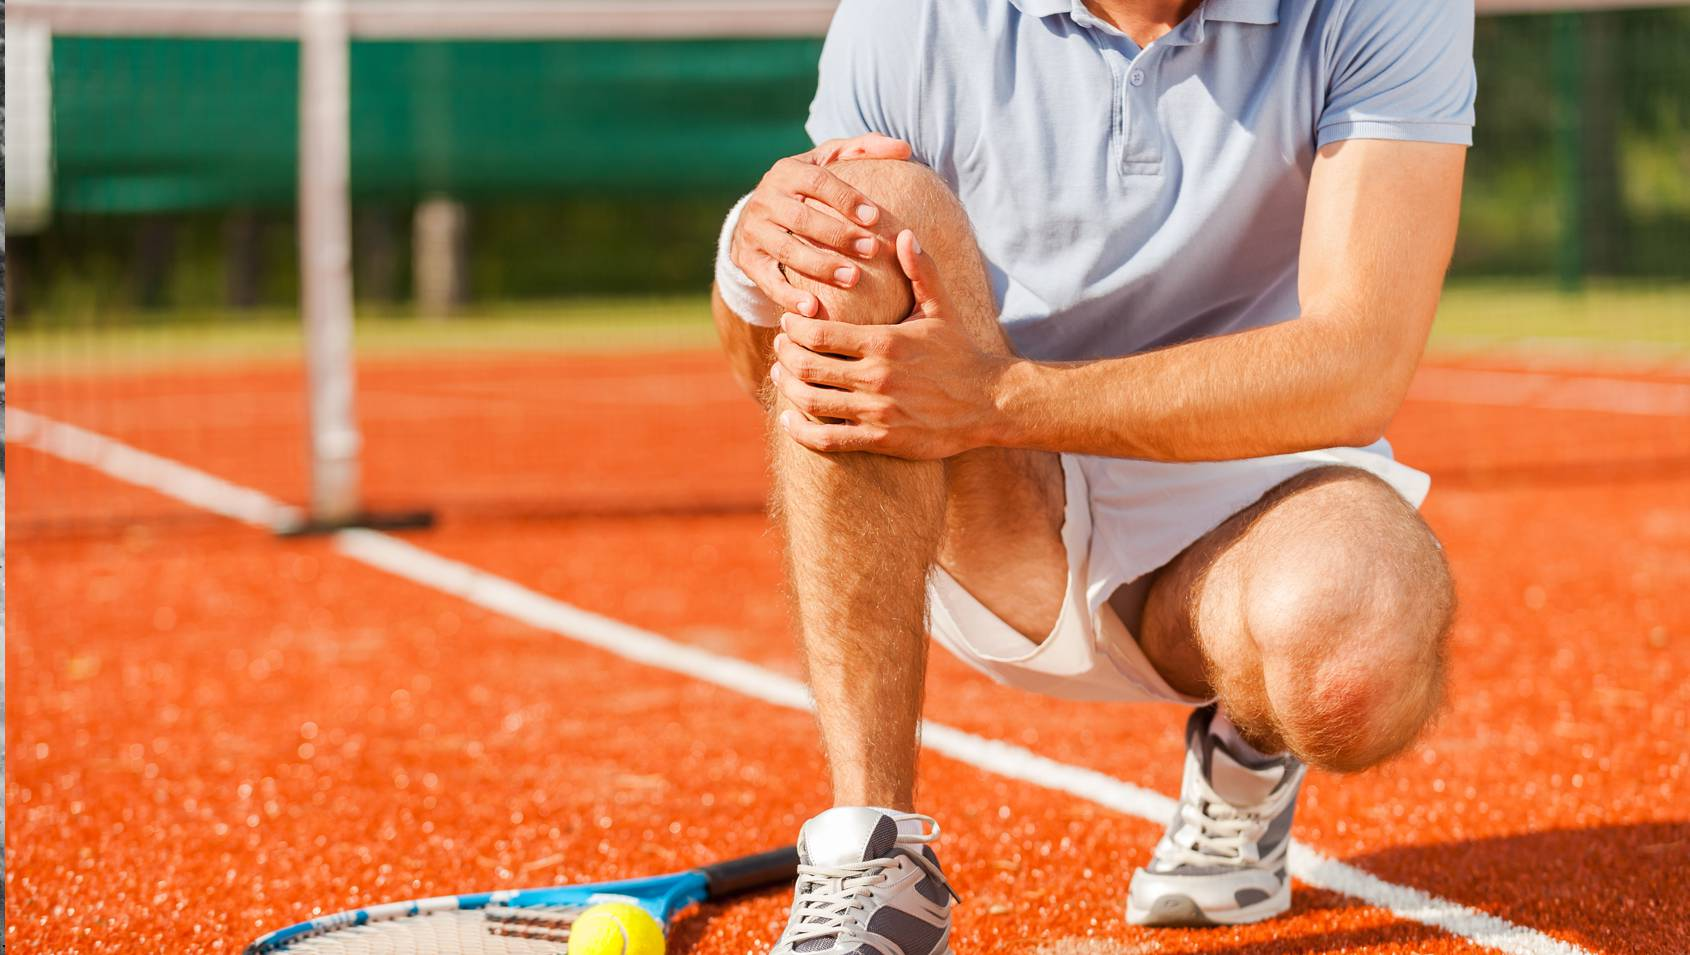 Knee injury and surgeries